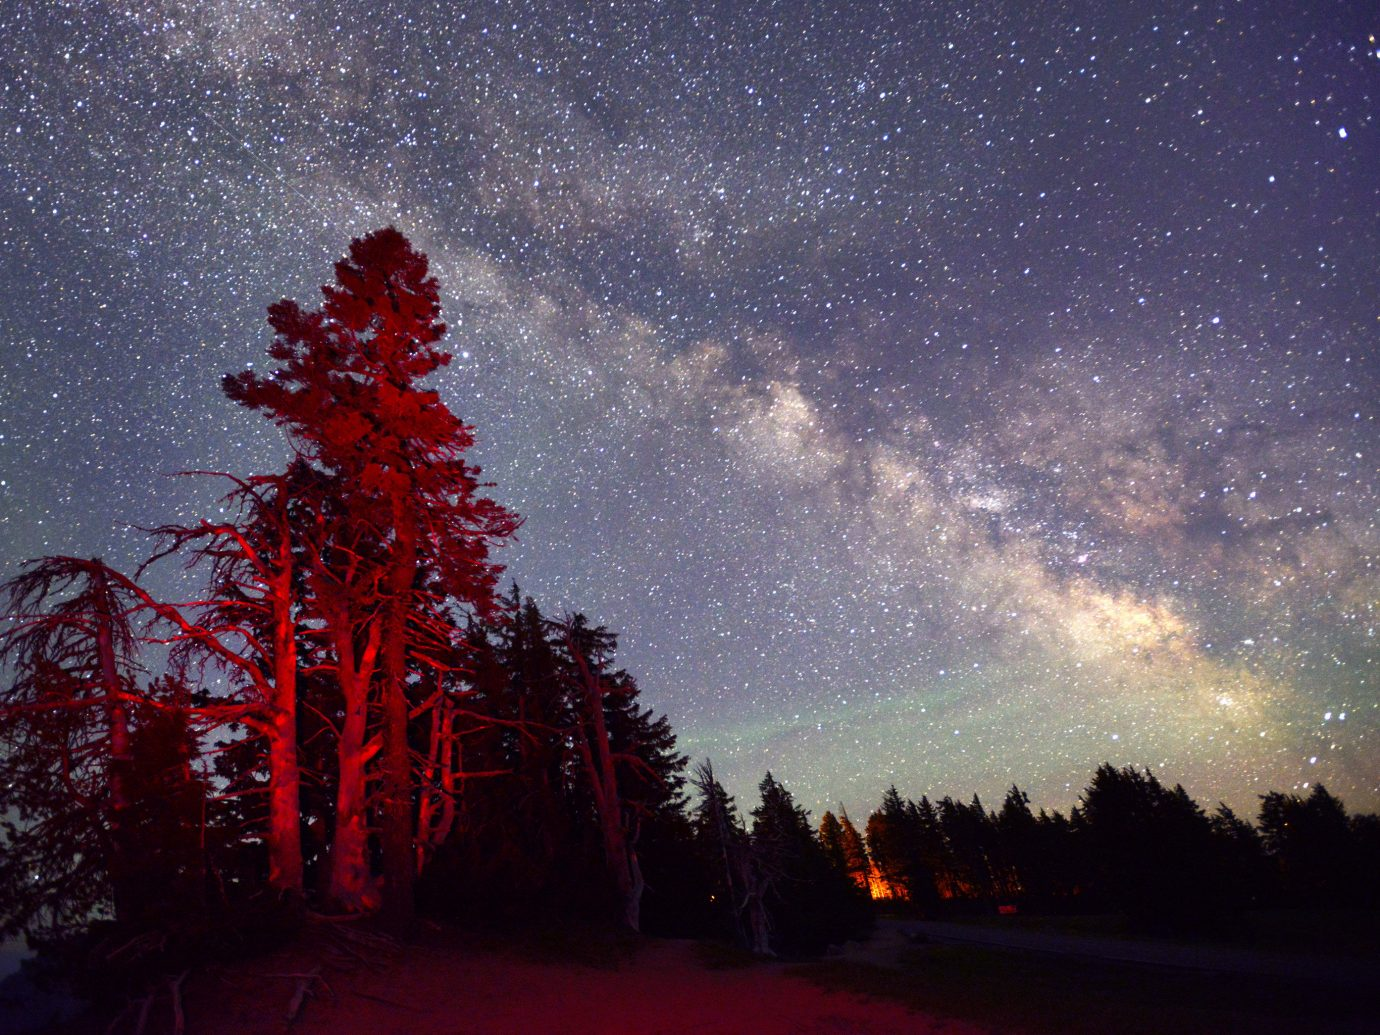 Trip Ideas tree outdoor sky night star red astronomical object galaxy astronomy outdoor object Night Sky